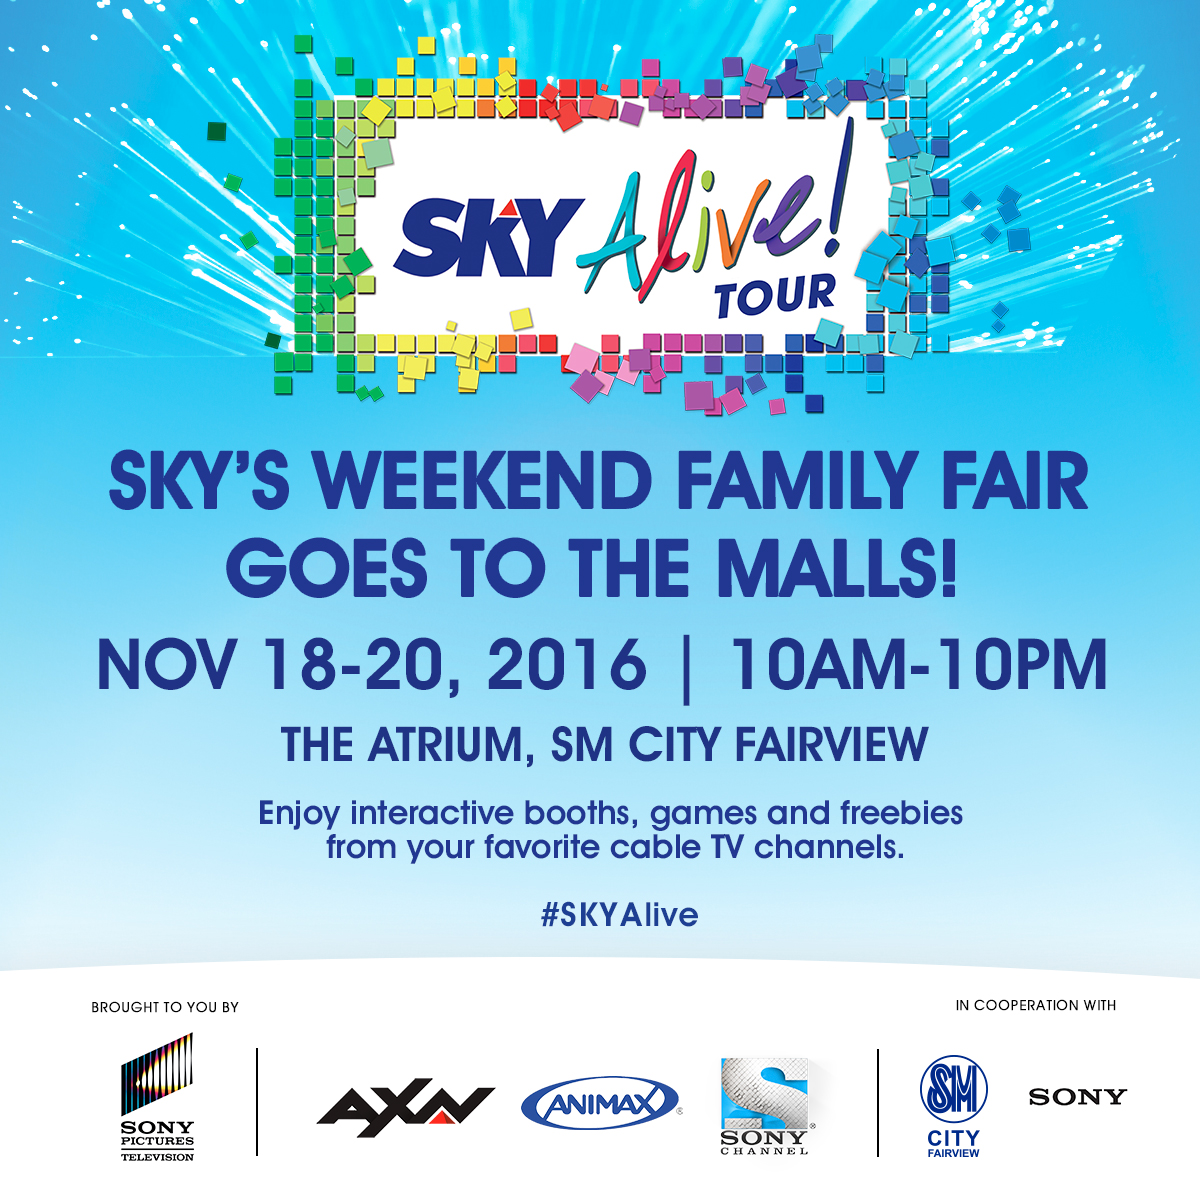 The Amazing Race Asia's 'Eruption,' Maggie Wilson ready to meet fans in SKY alive! Mall tour